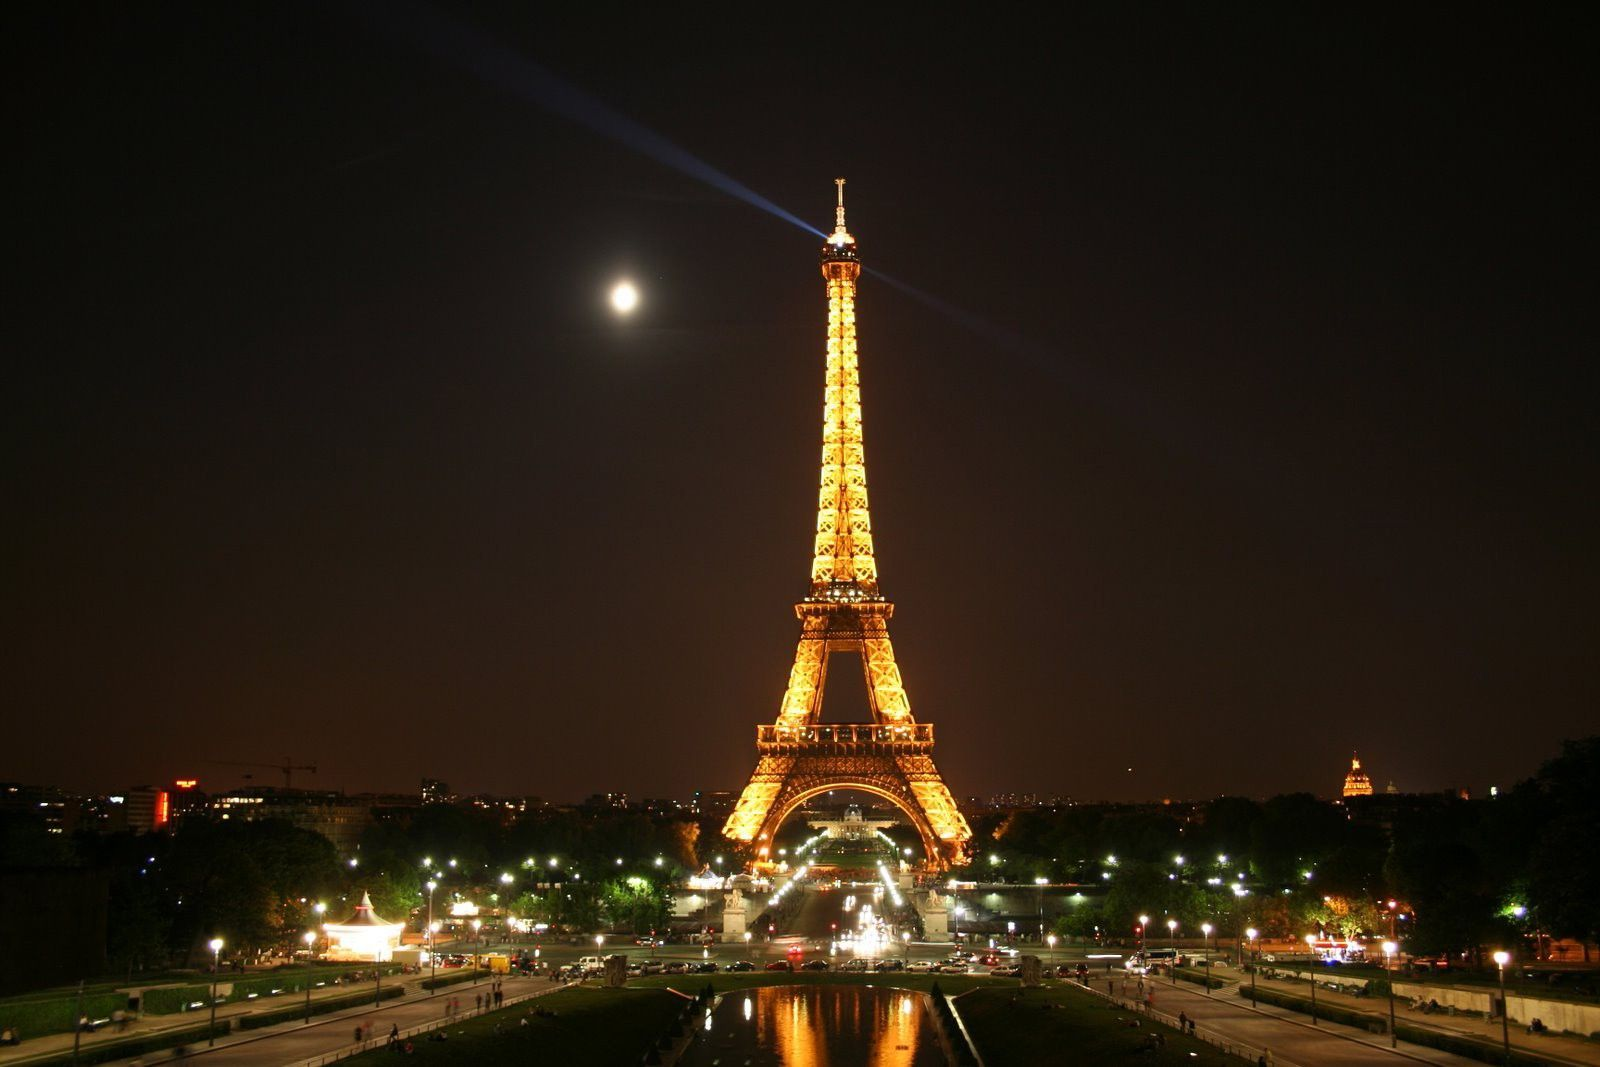 hd eiffel tower wallpaper pixelstalk desktop eiffel tower hd